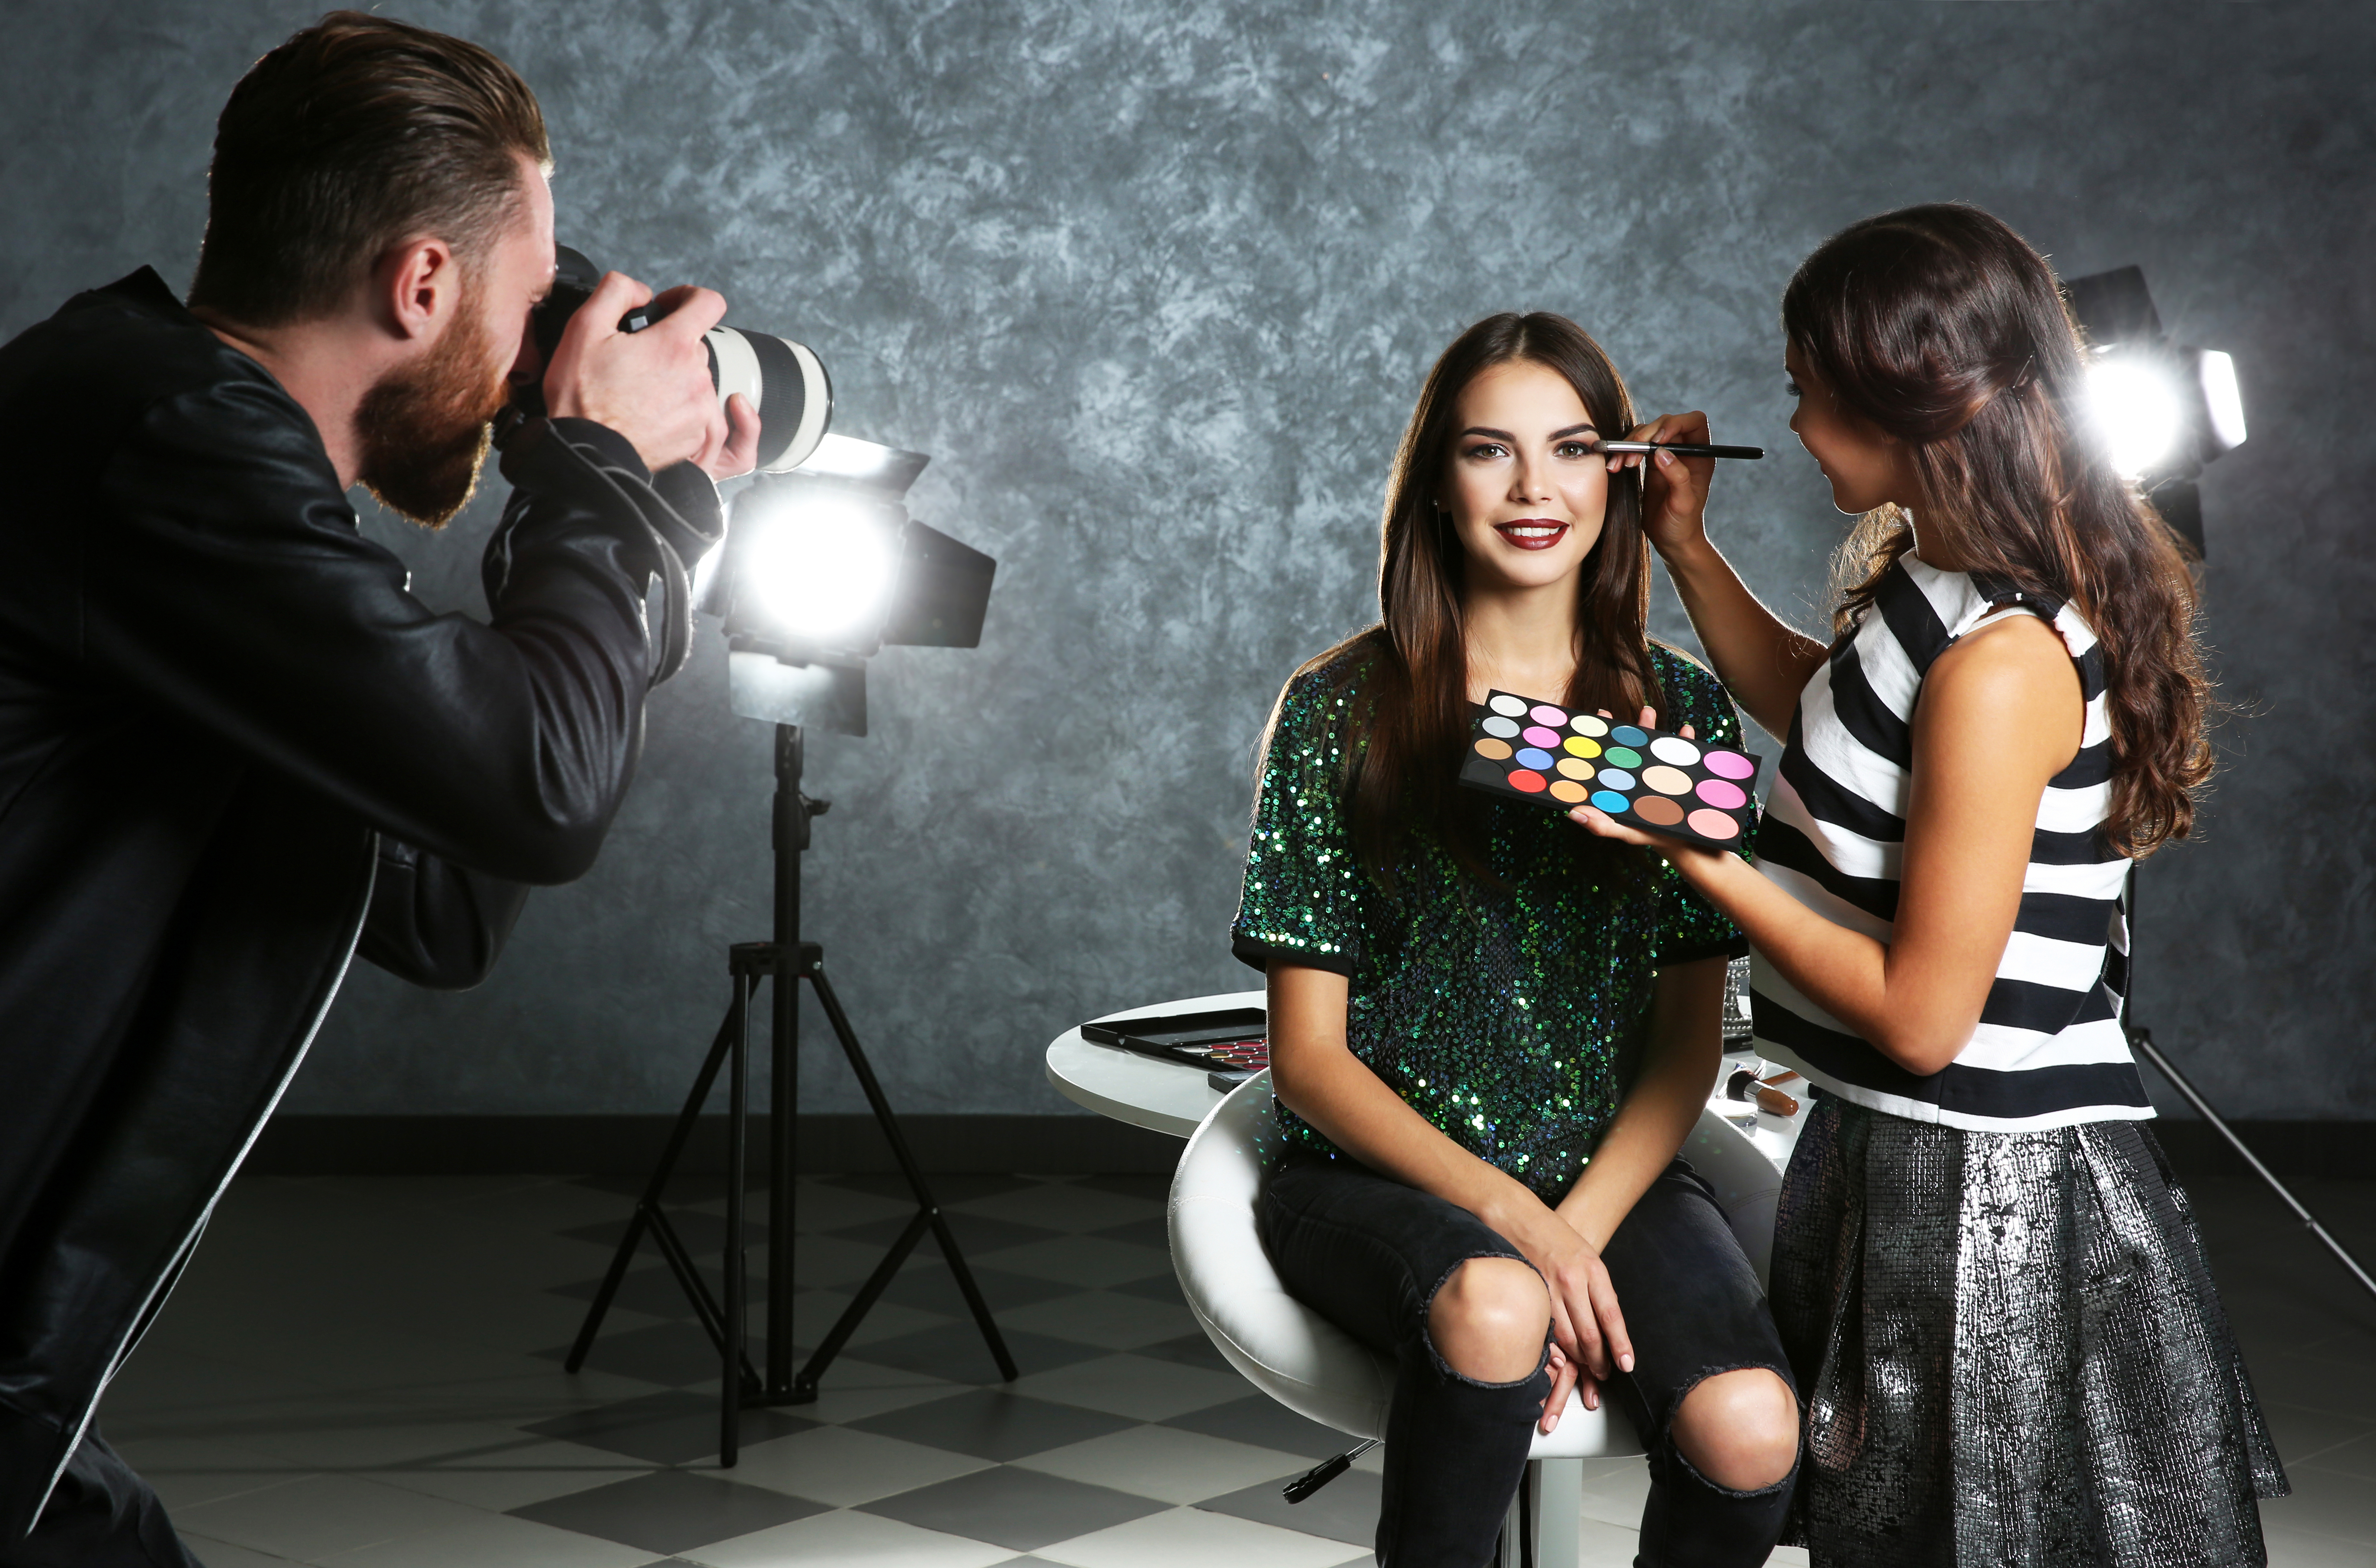 Photography Careers in Makeup